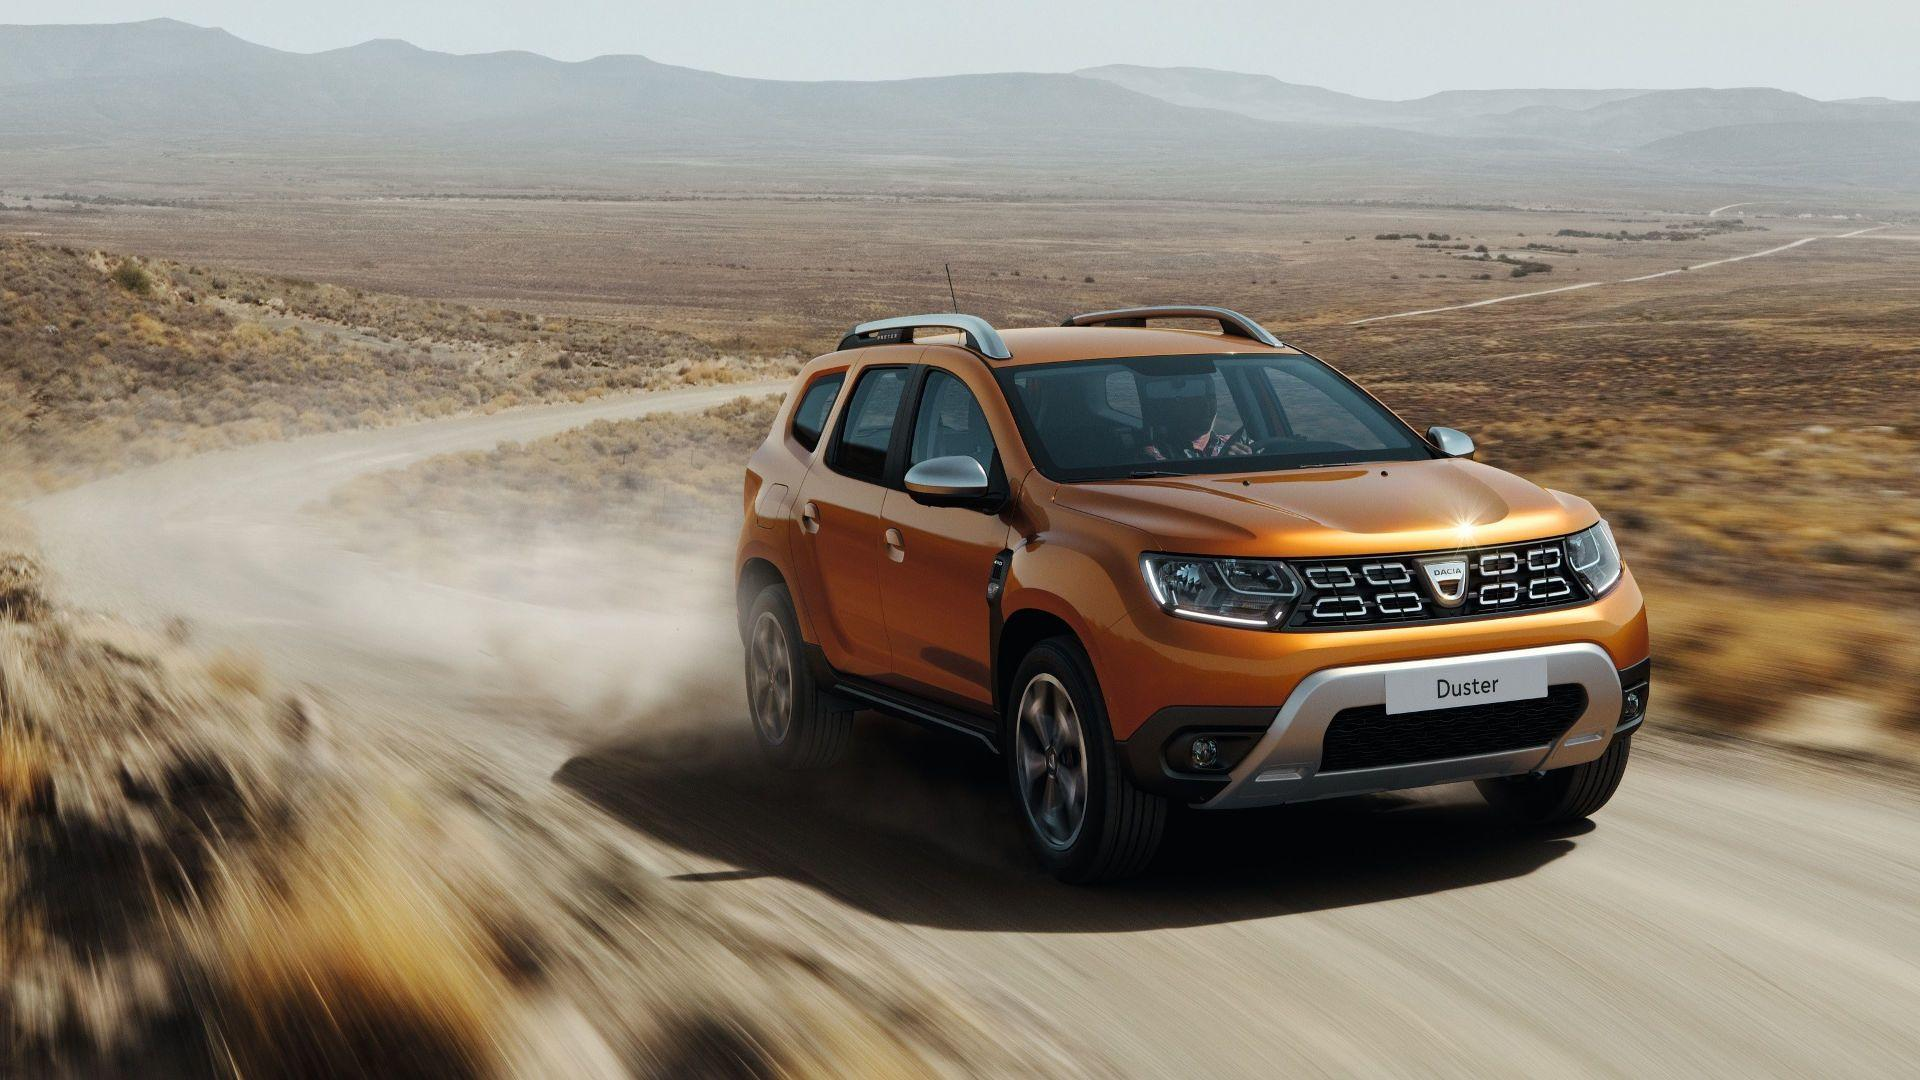 2018 dacia duster renault duster revealed autodevot 2018 dacia duster voltagebd Image collections